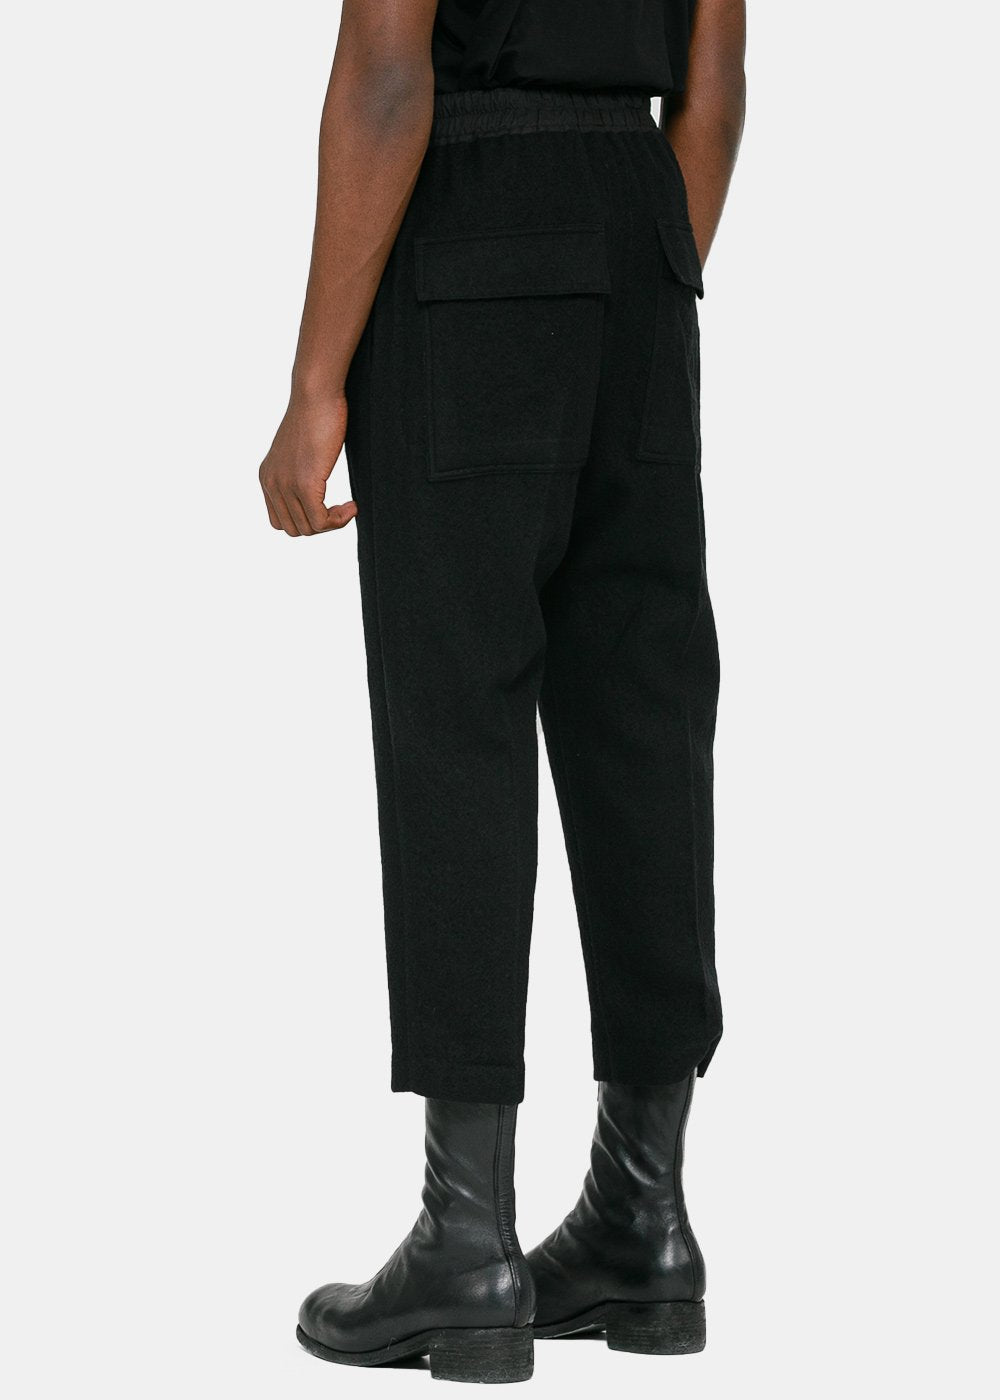 Black Cropped Astaires Pants